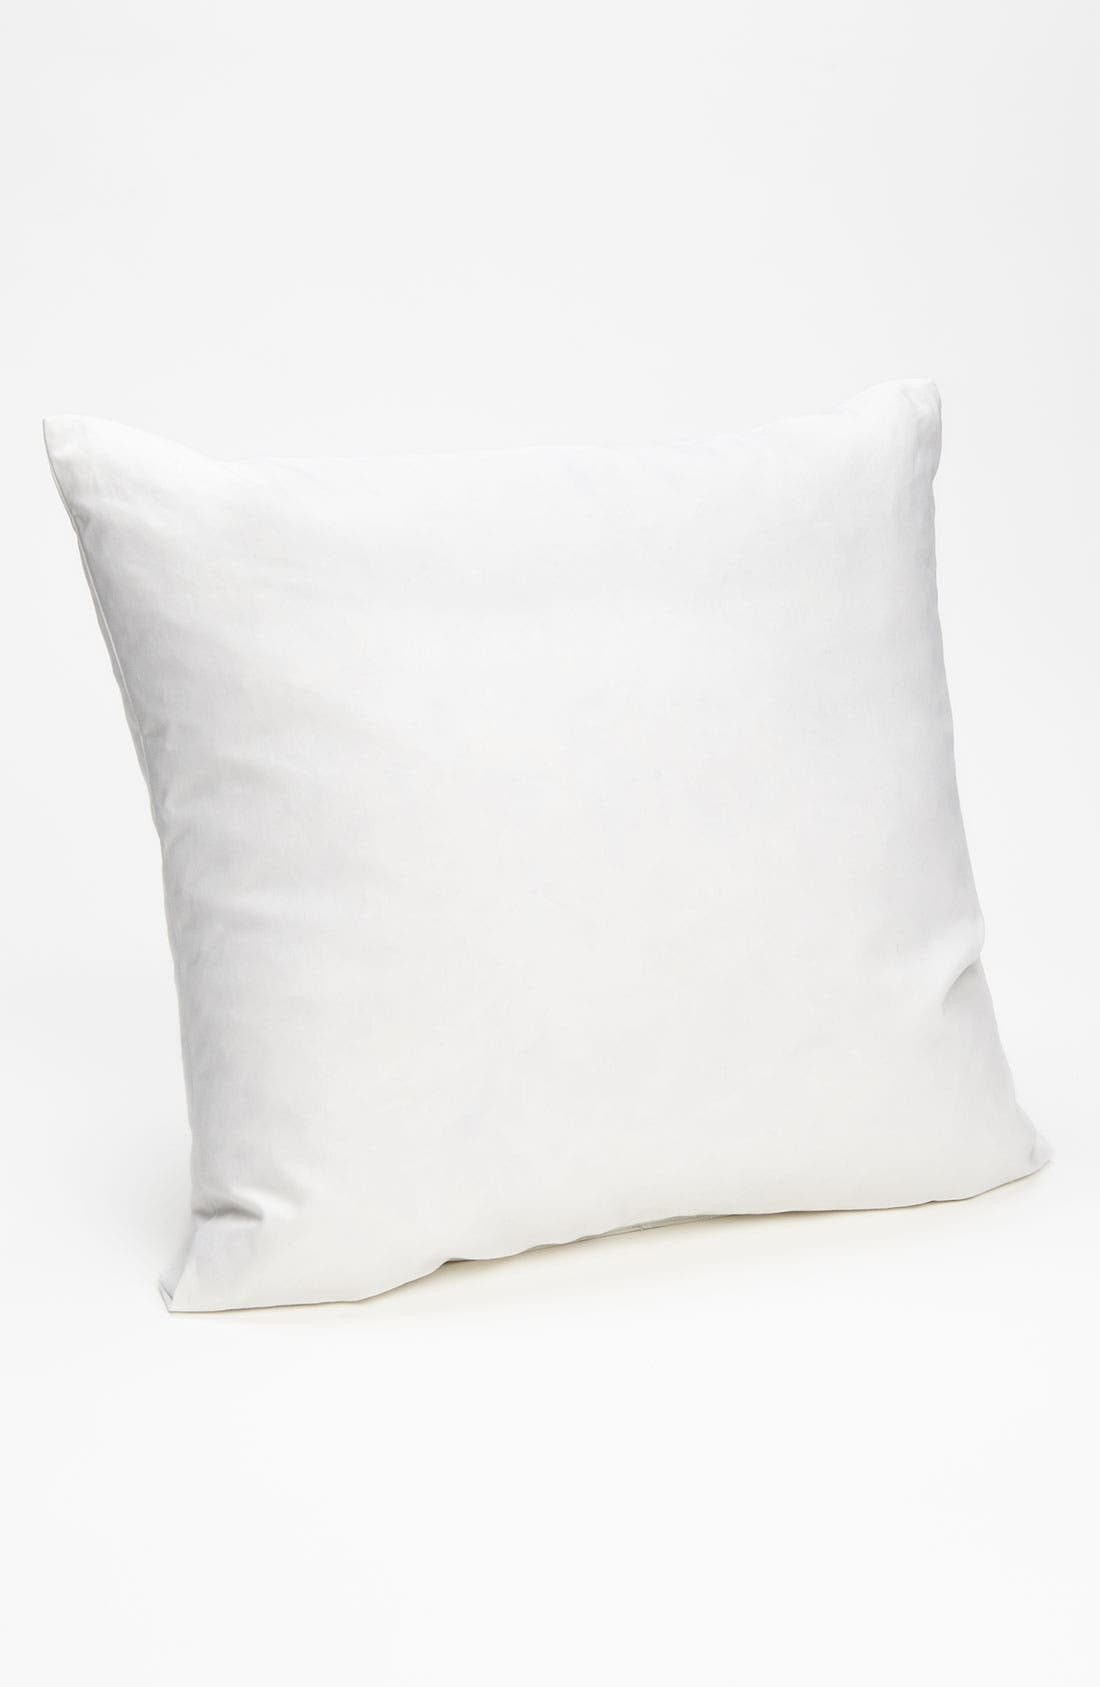 Alternate Image 1 Selected - Nordstrom at Home 18x18 Feather & Down Pillow Insert (2 for $24)